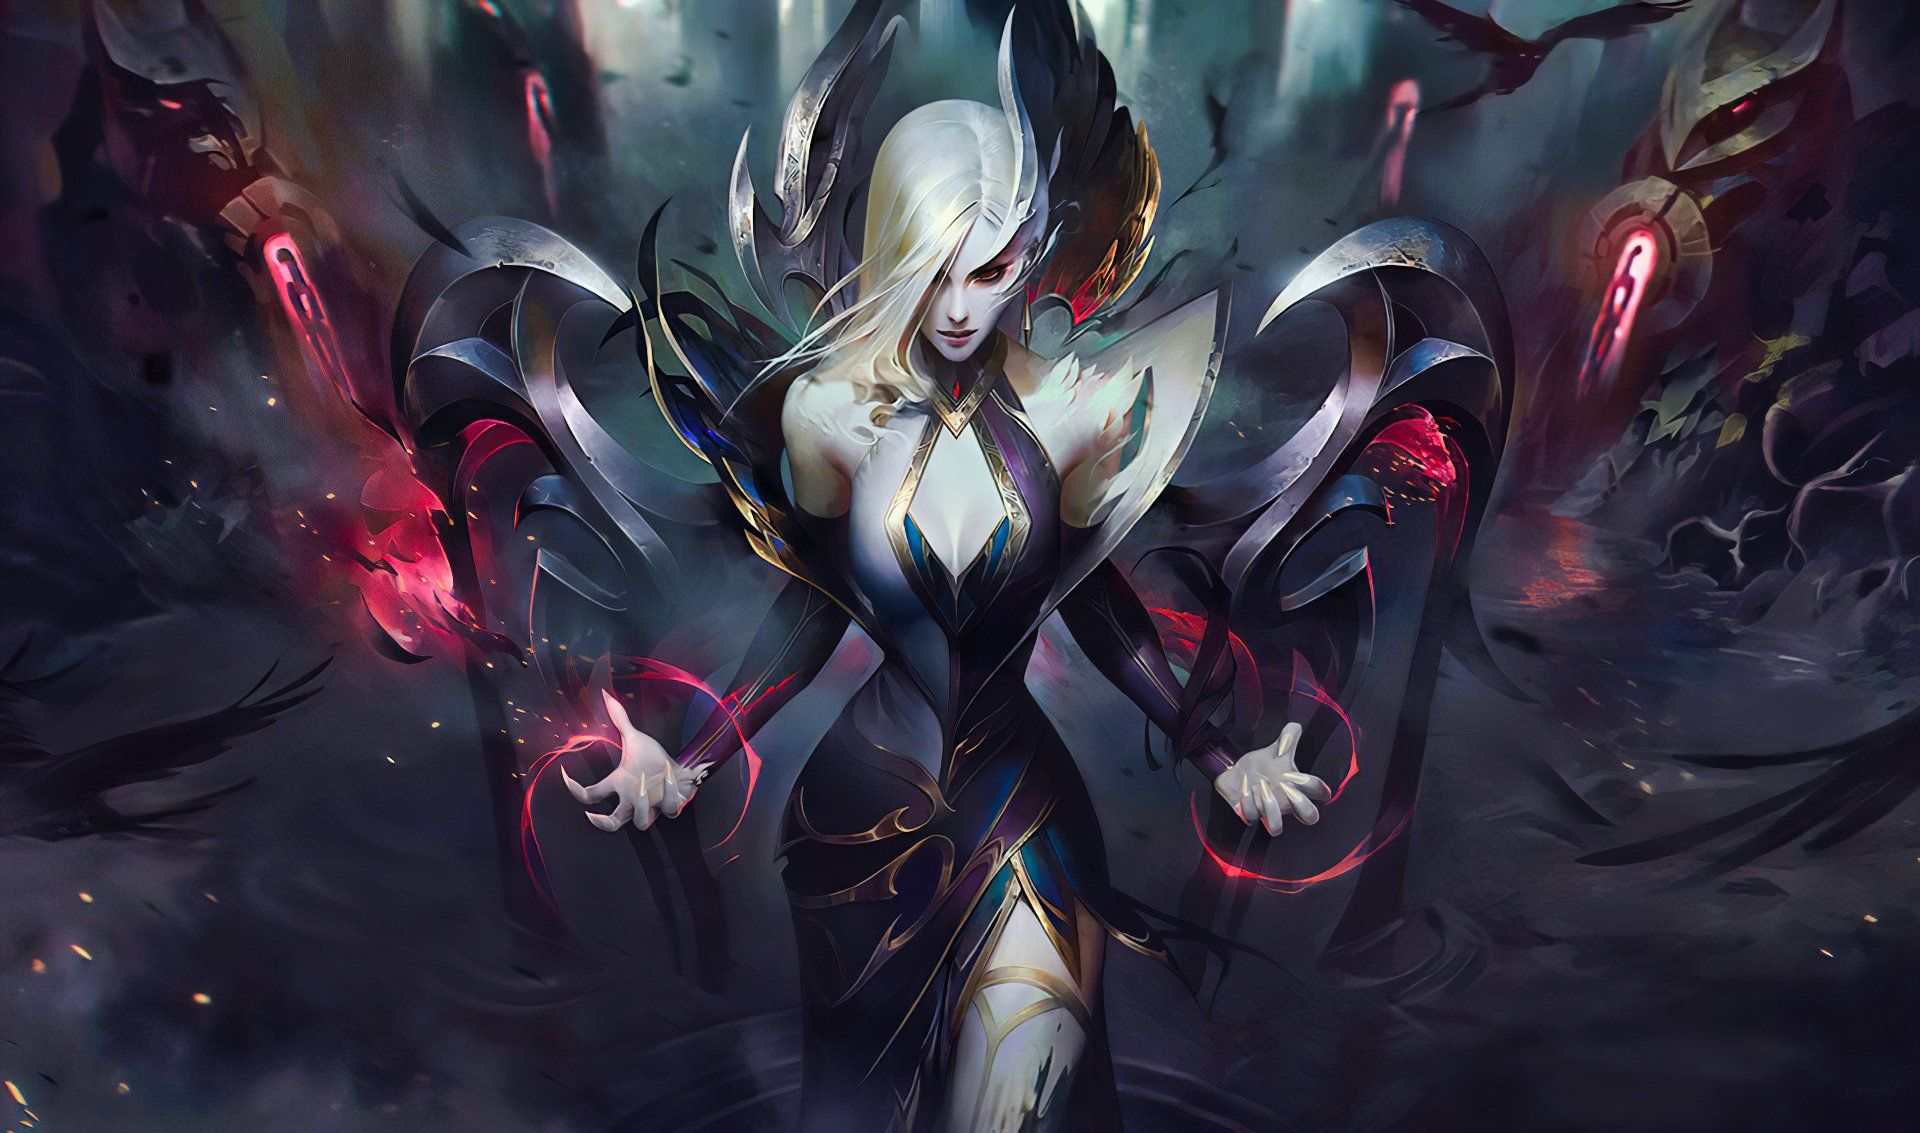 Leblanc Morgana And Zyra Join The Coven With Brand New Skins League Of Legends Live League Of Legends Lol League Of Legends Coven zyra league of legends wallpaper